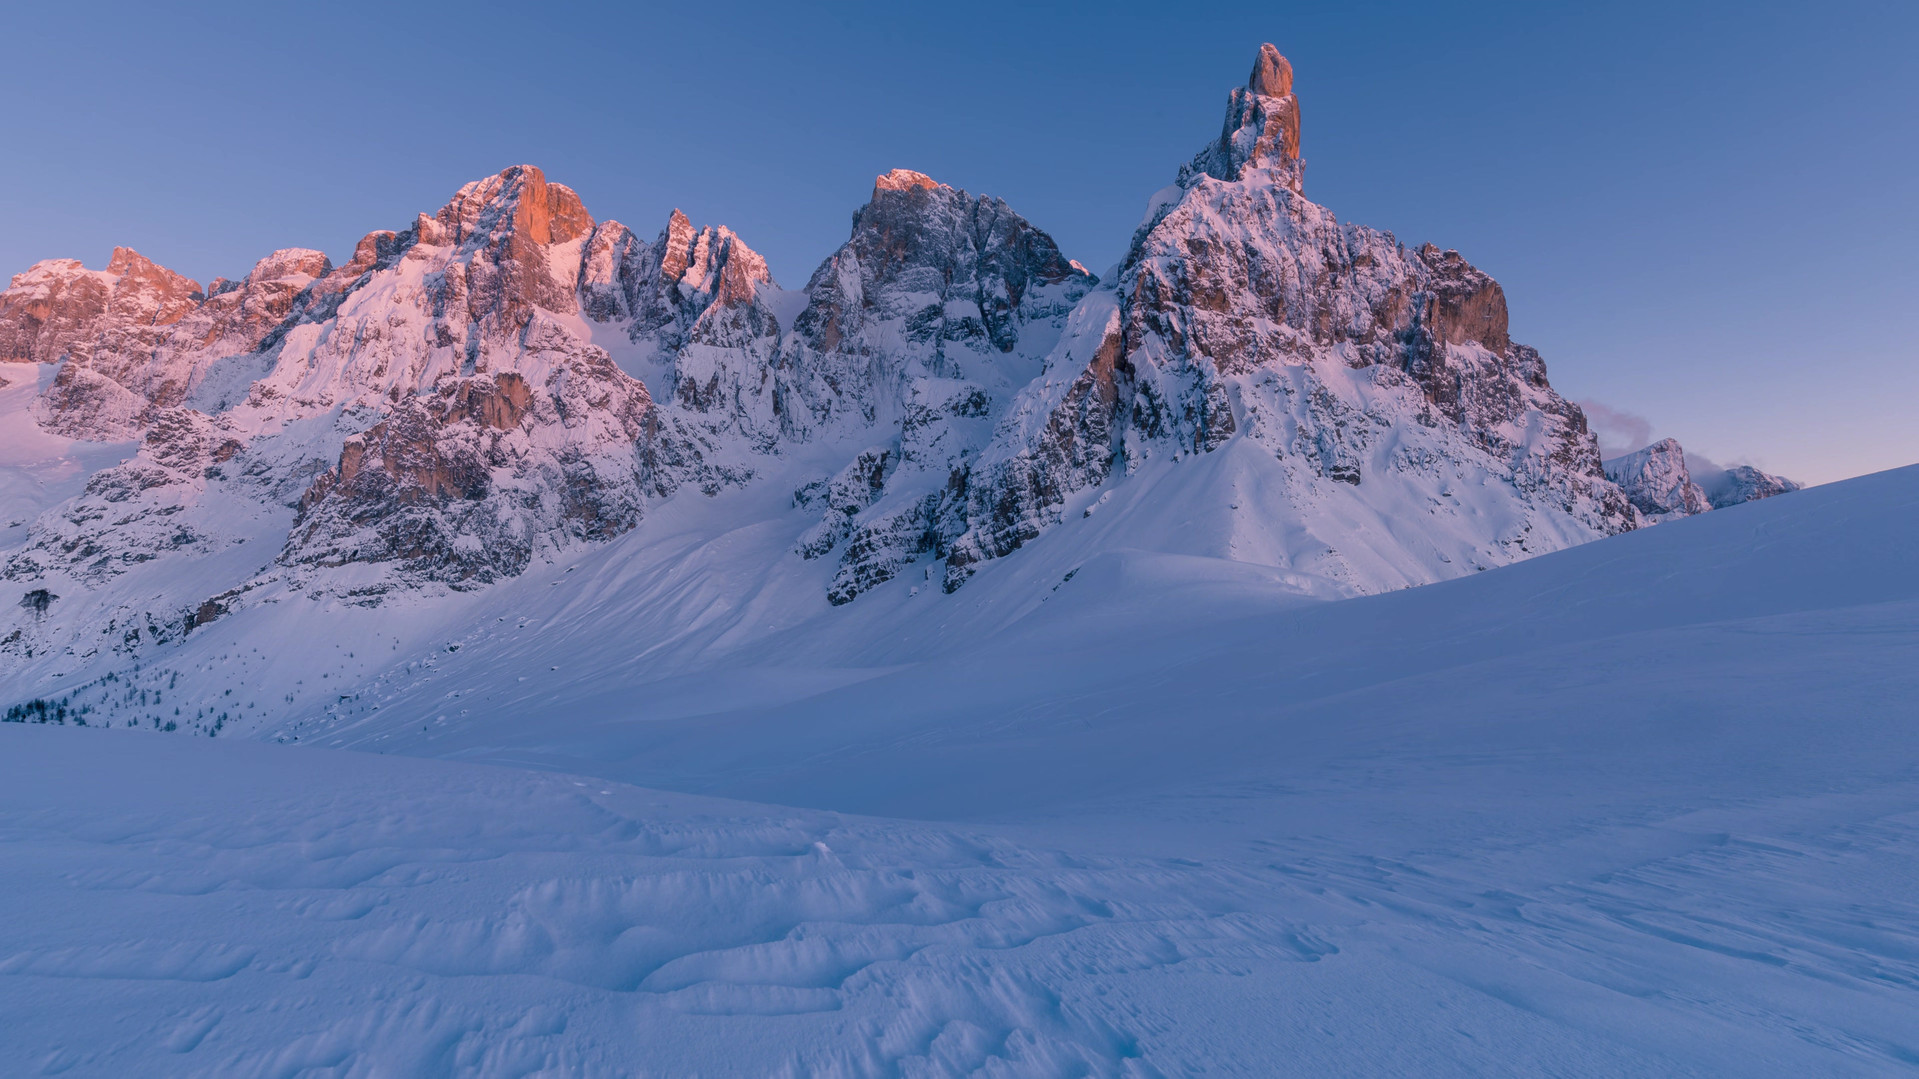 Time lapse tramonto passo role 2019.mp4